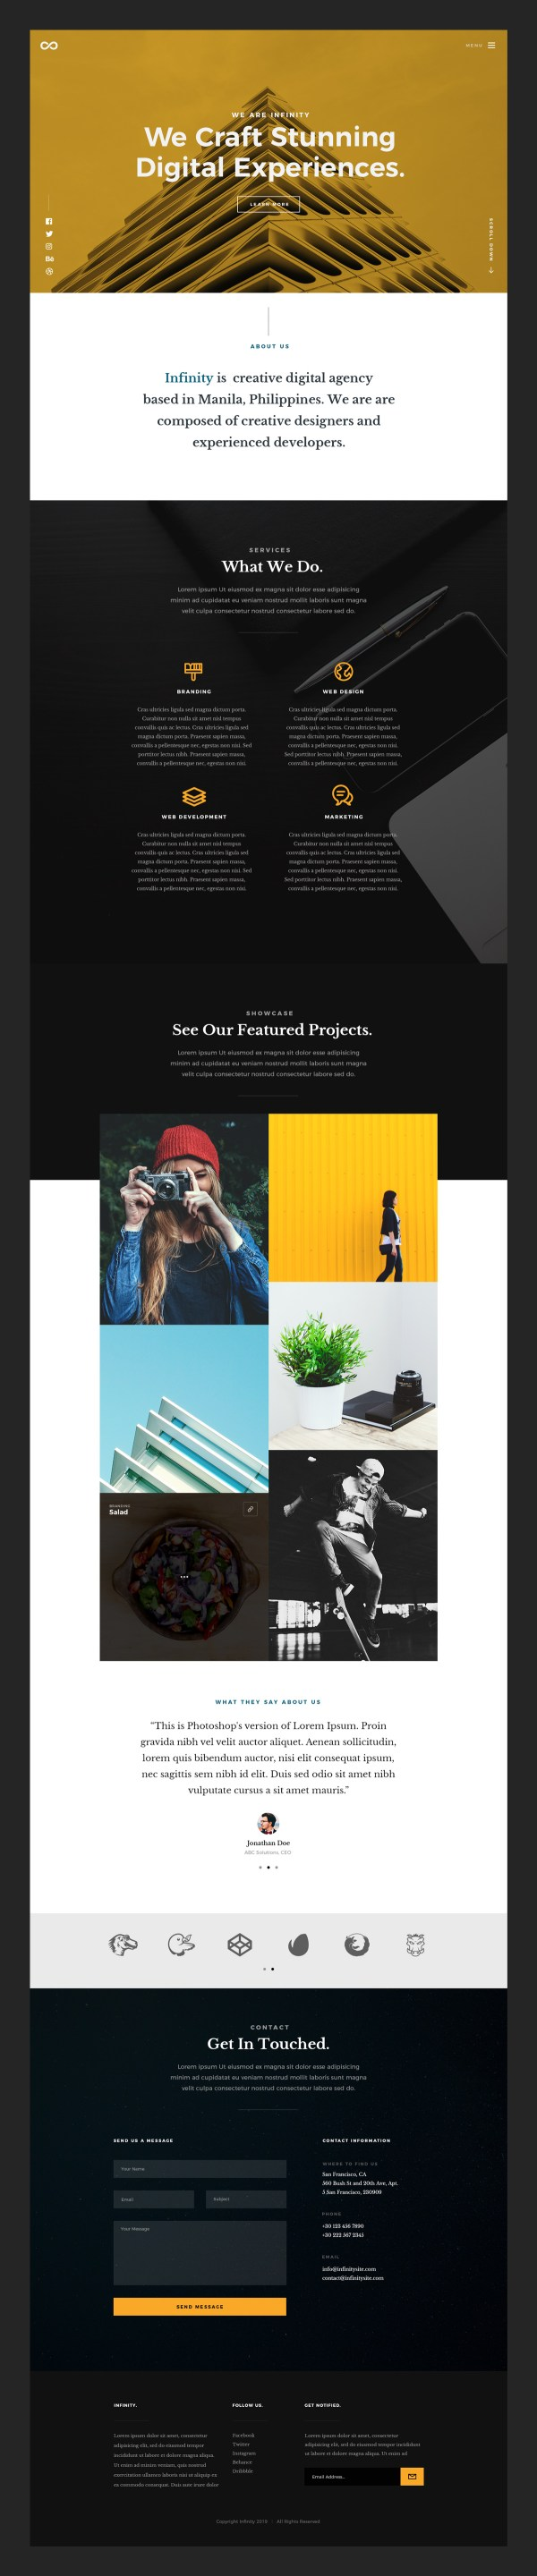 Infinity - Agency Portfolio Free PSD Website Template 02